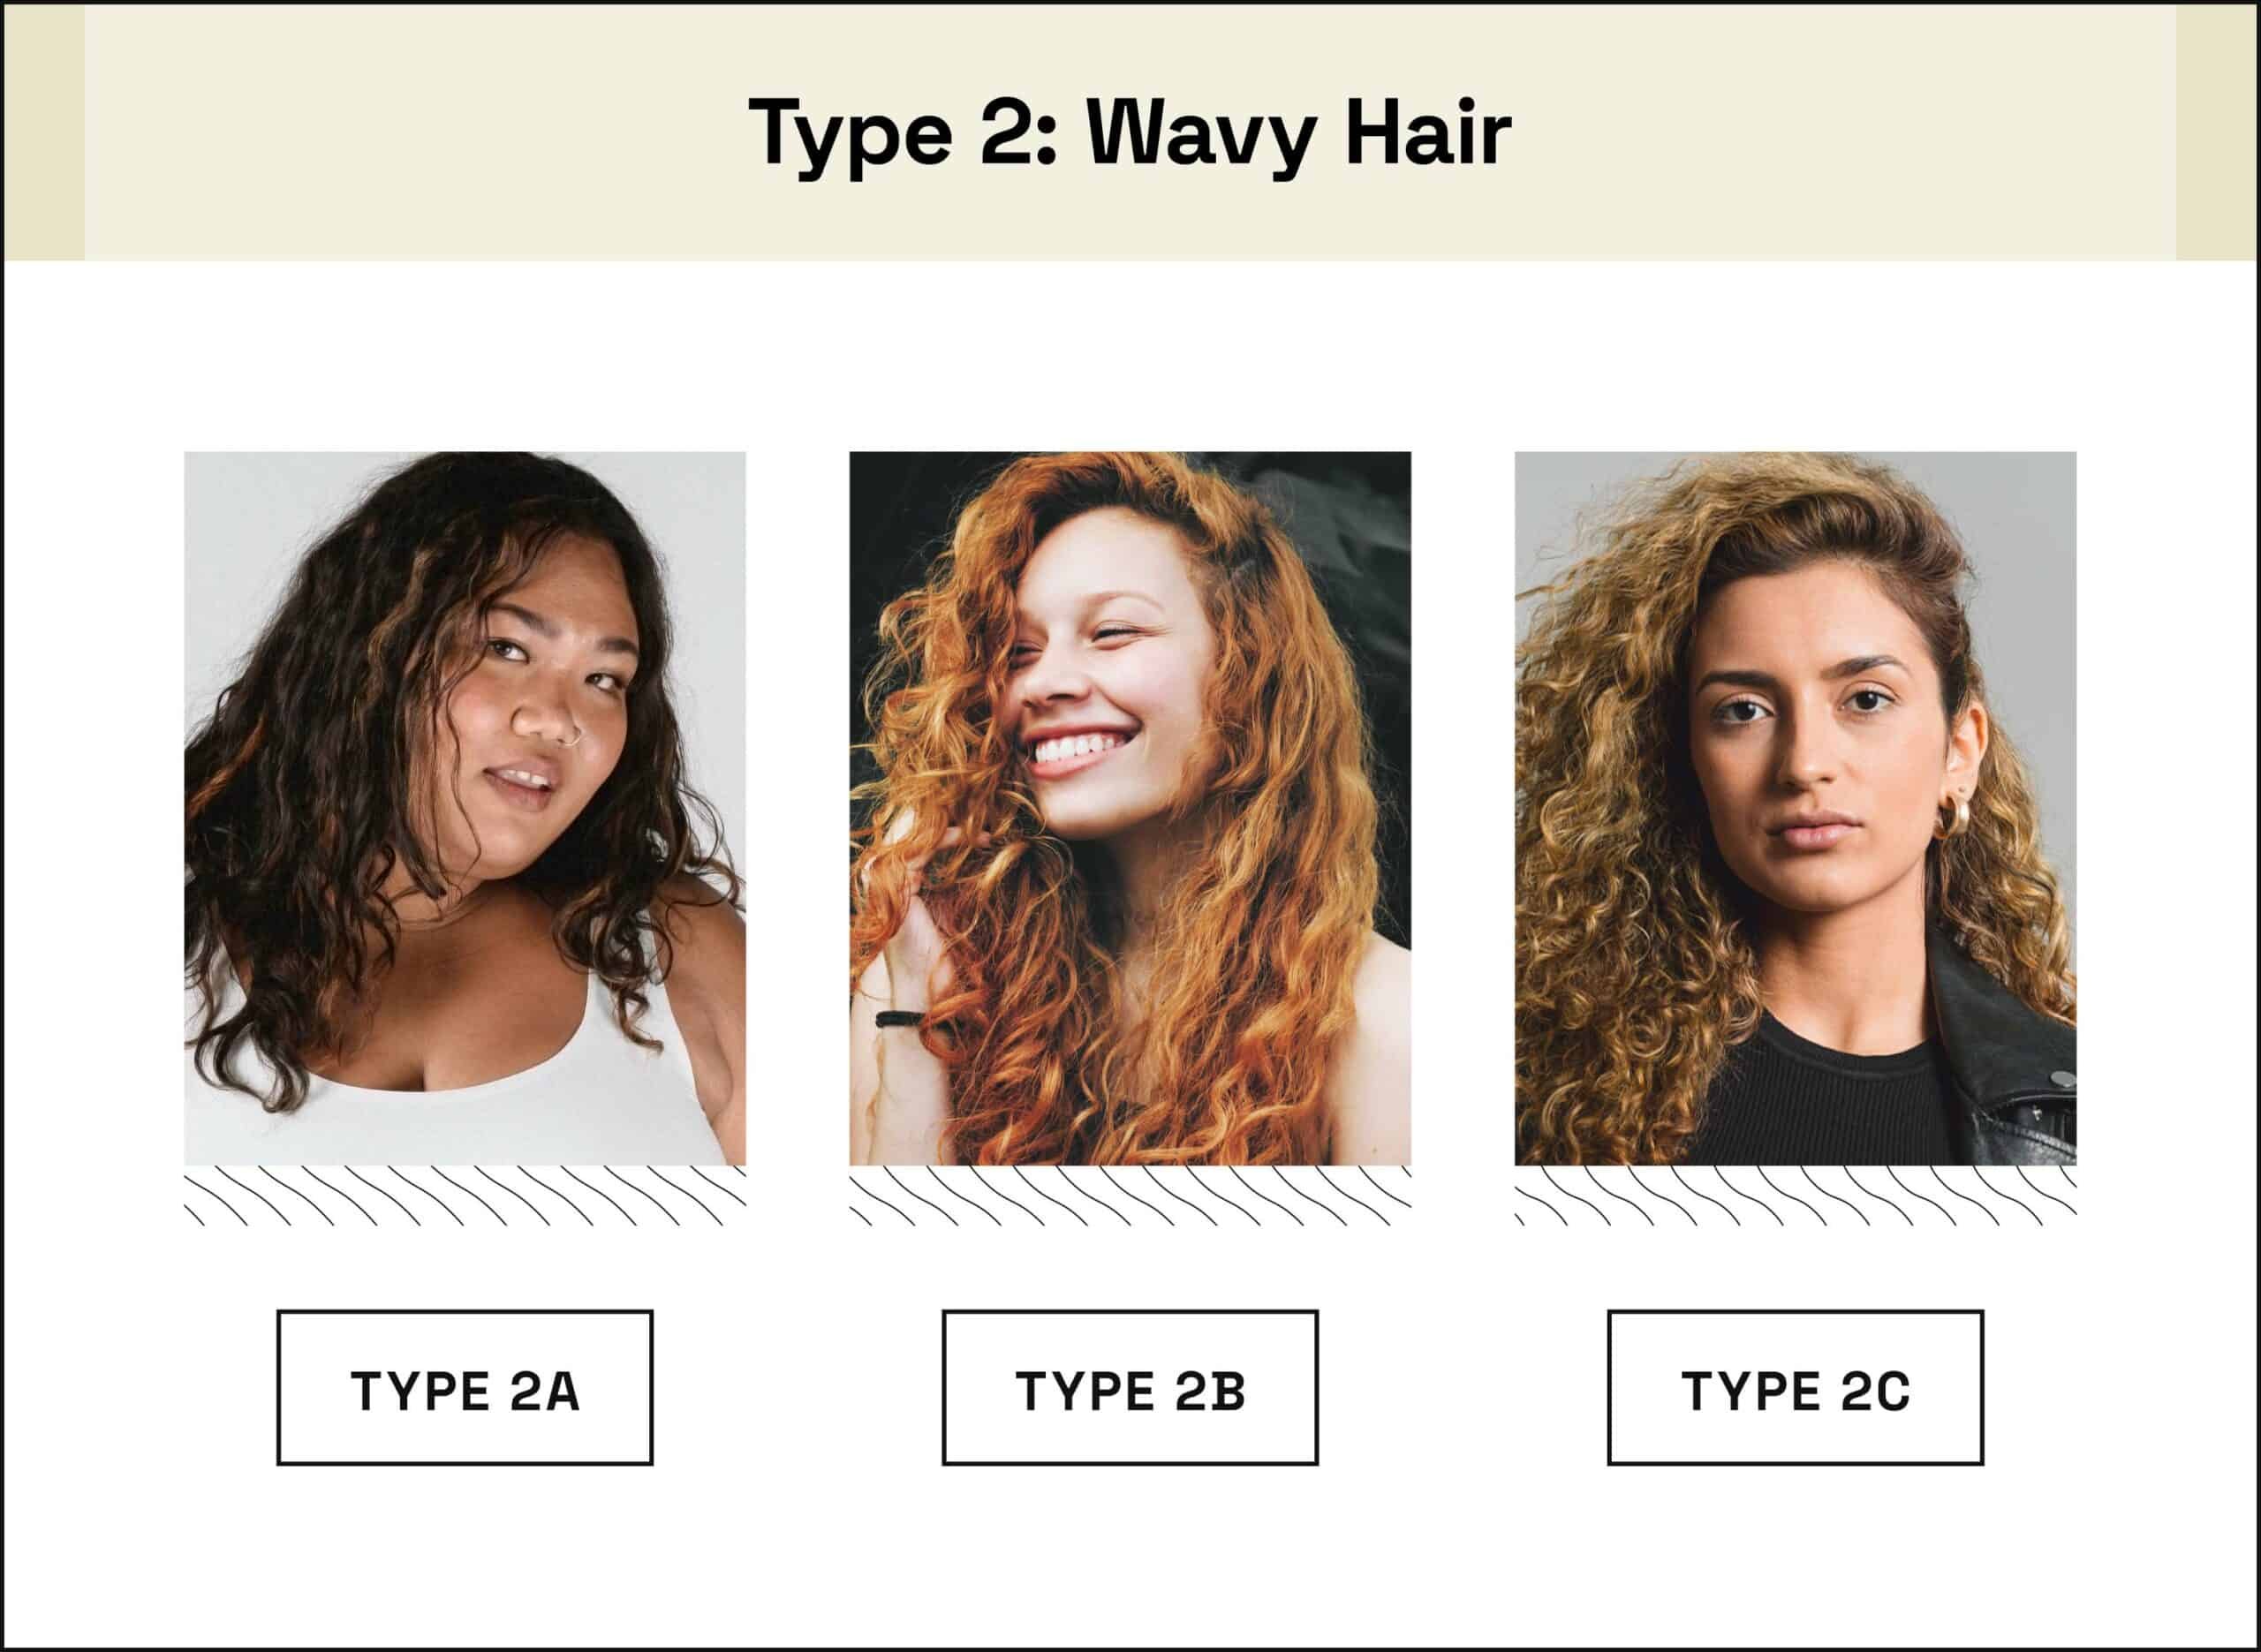 examples of type 2a 2b 2c hair textures